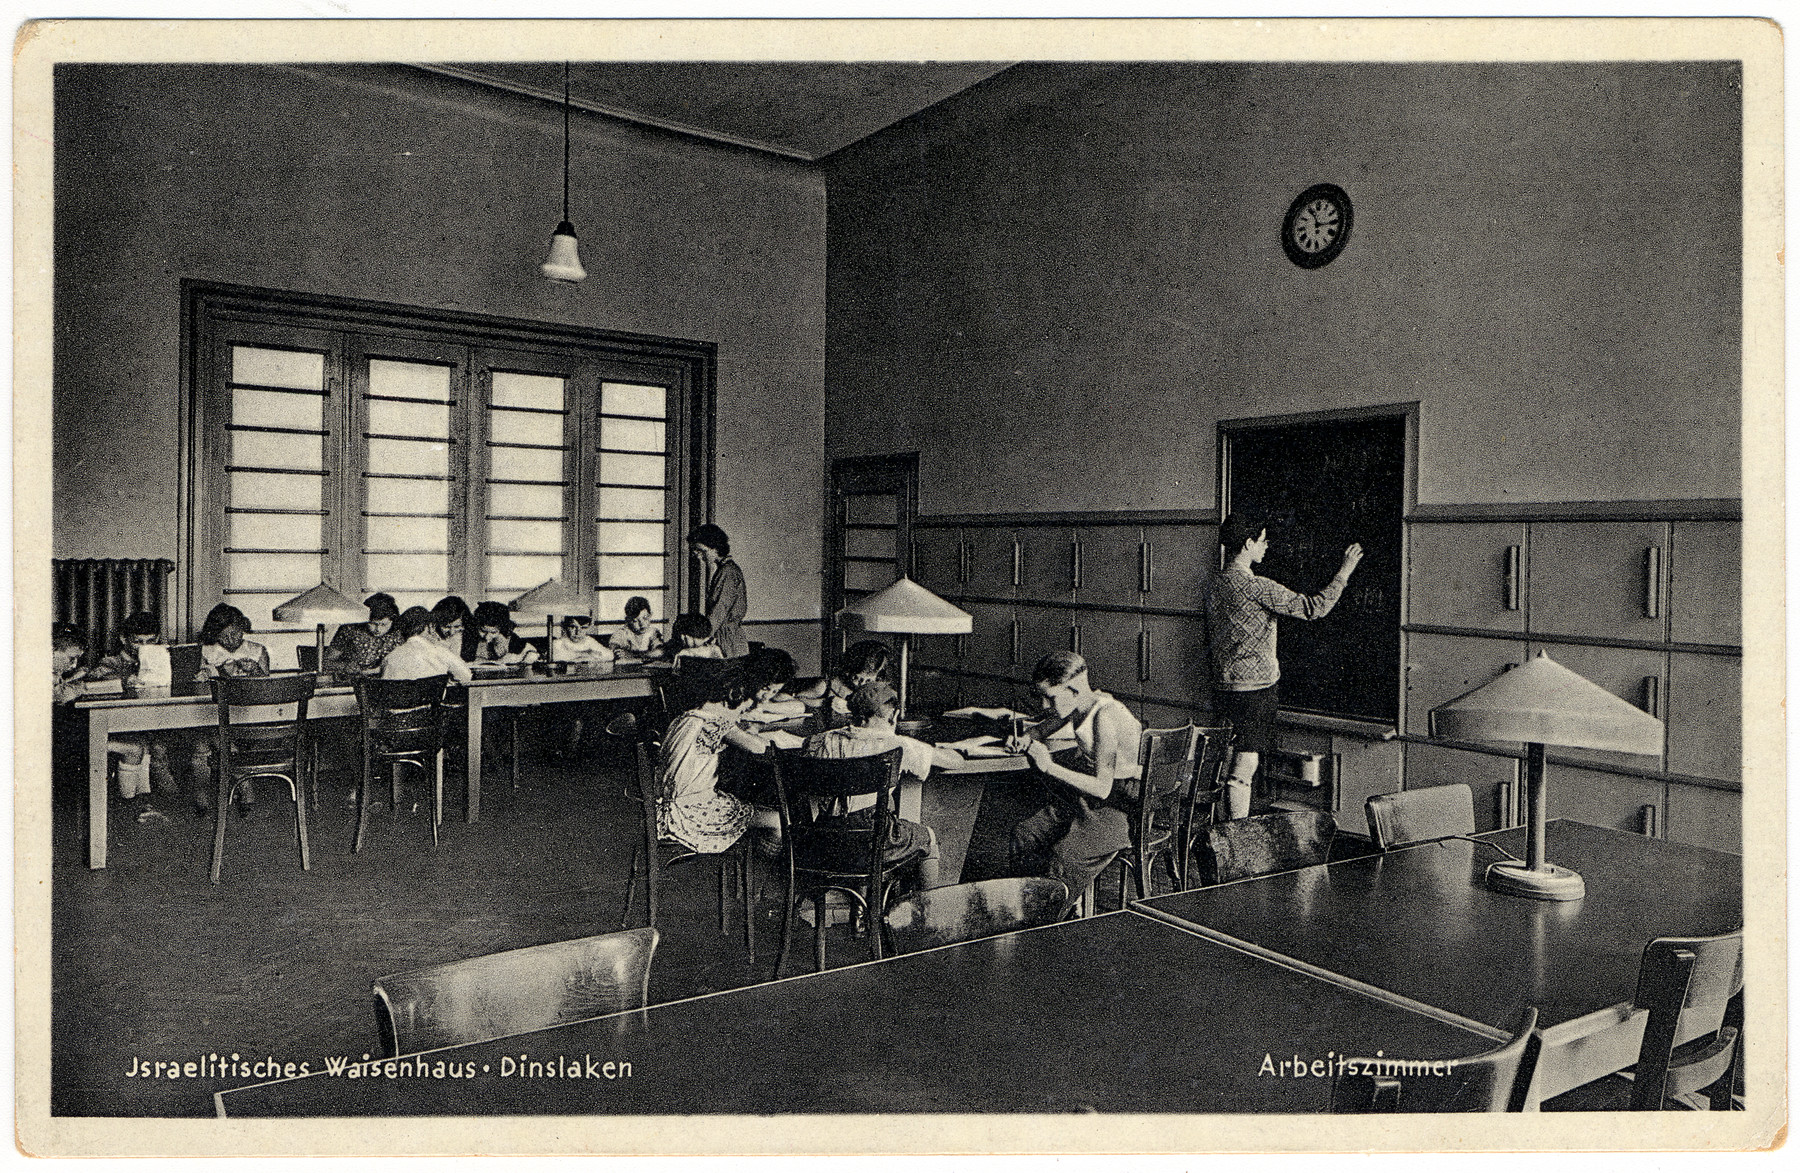 Children study in the classroom of the Waisenhaus of the Dinslaken Jewish orphanage.